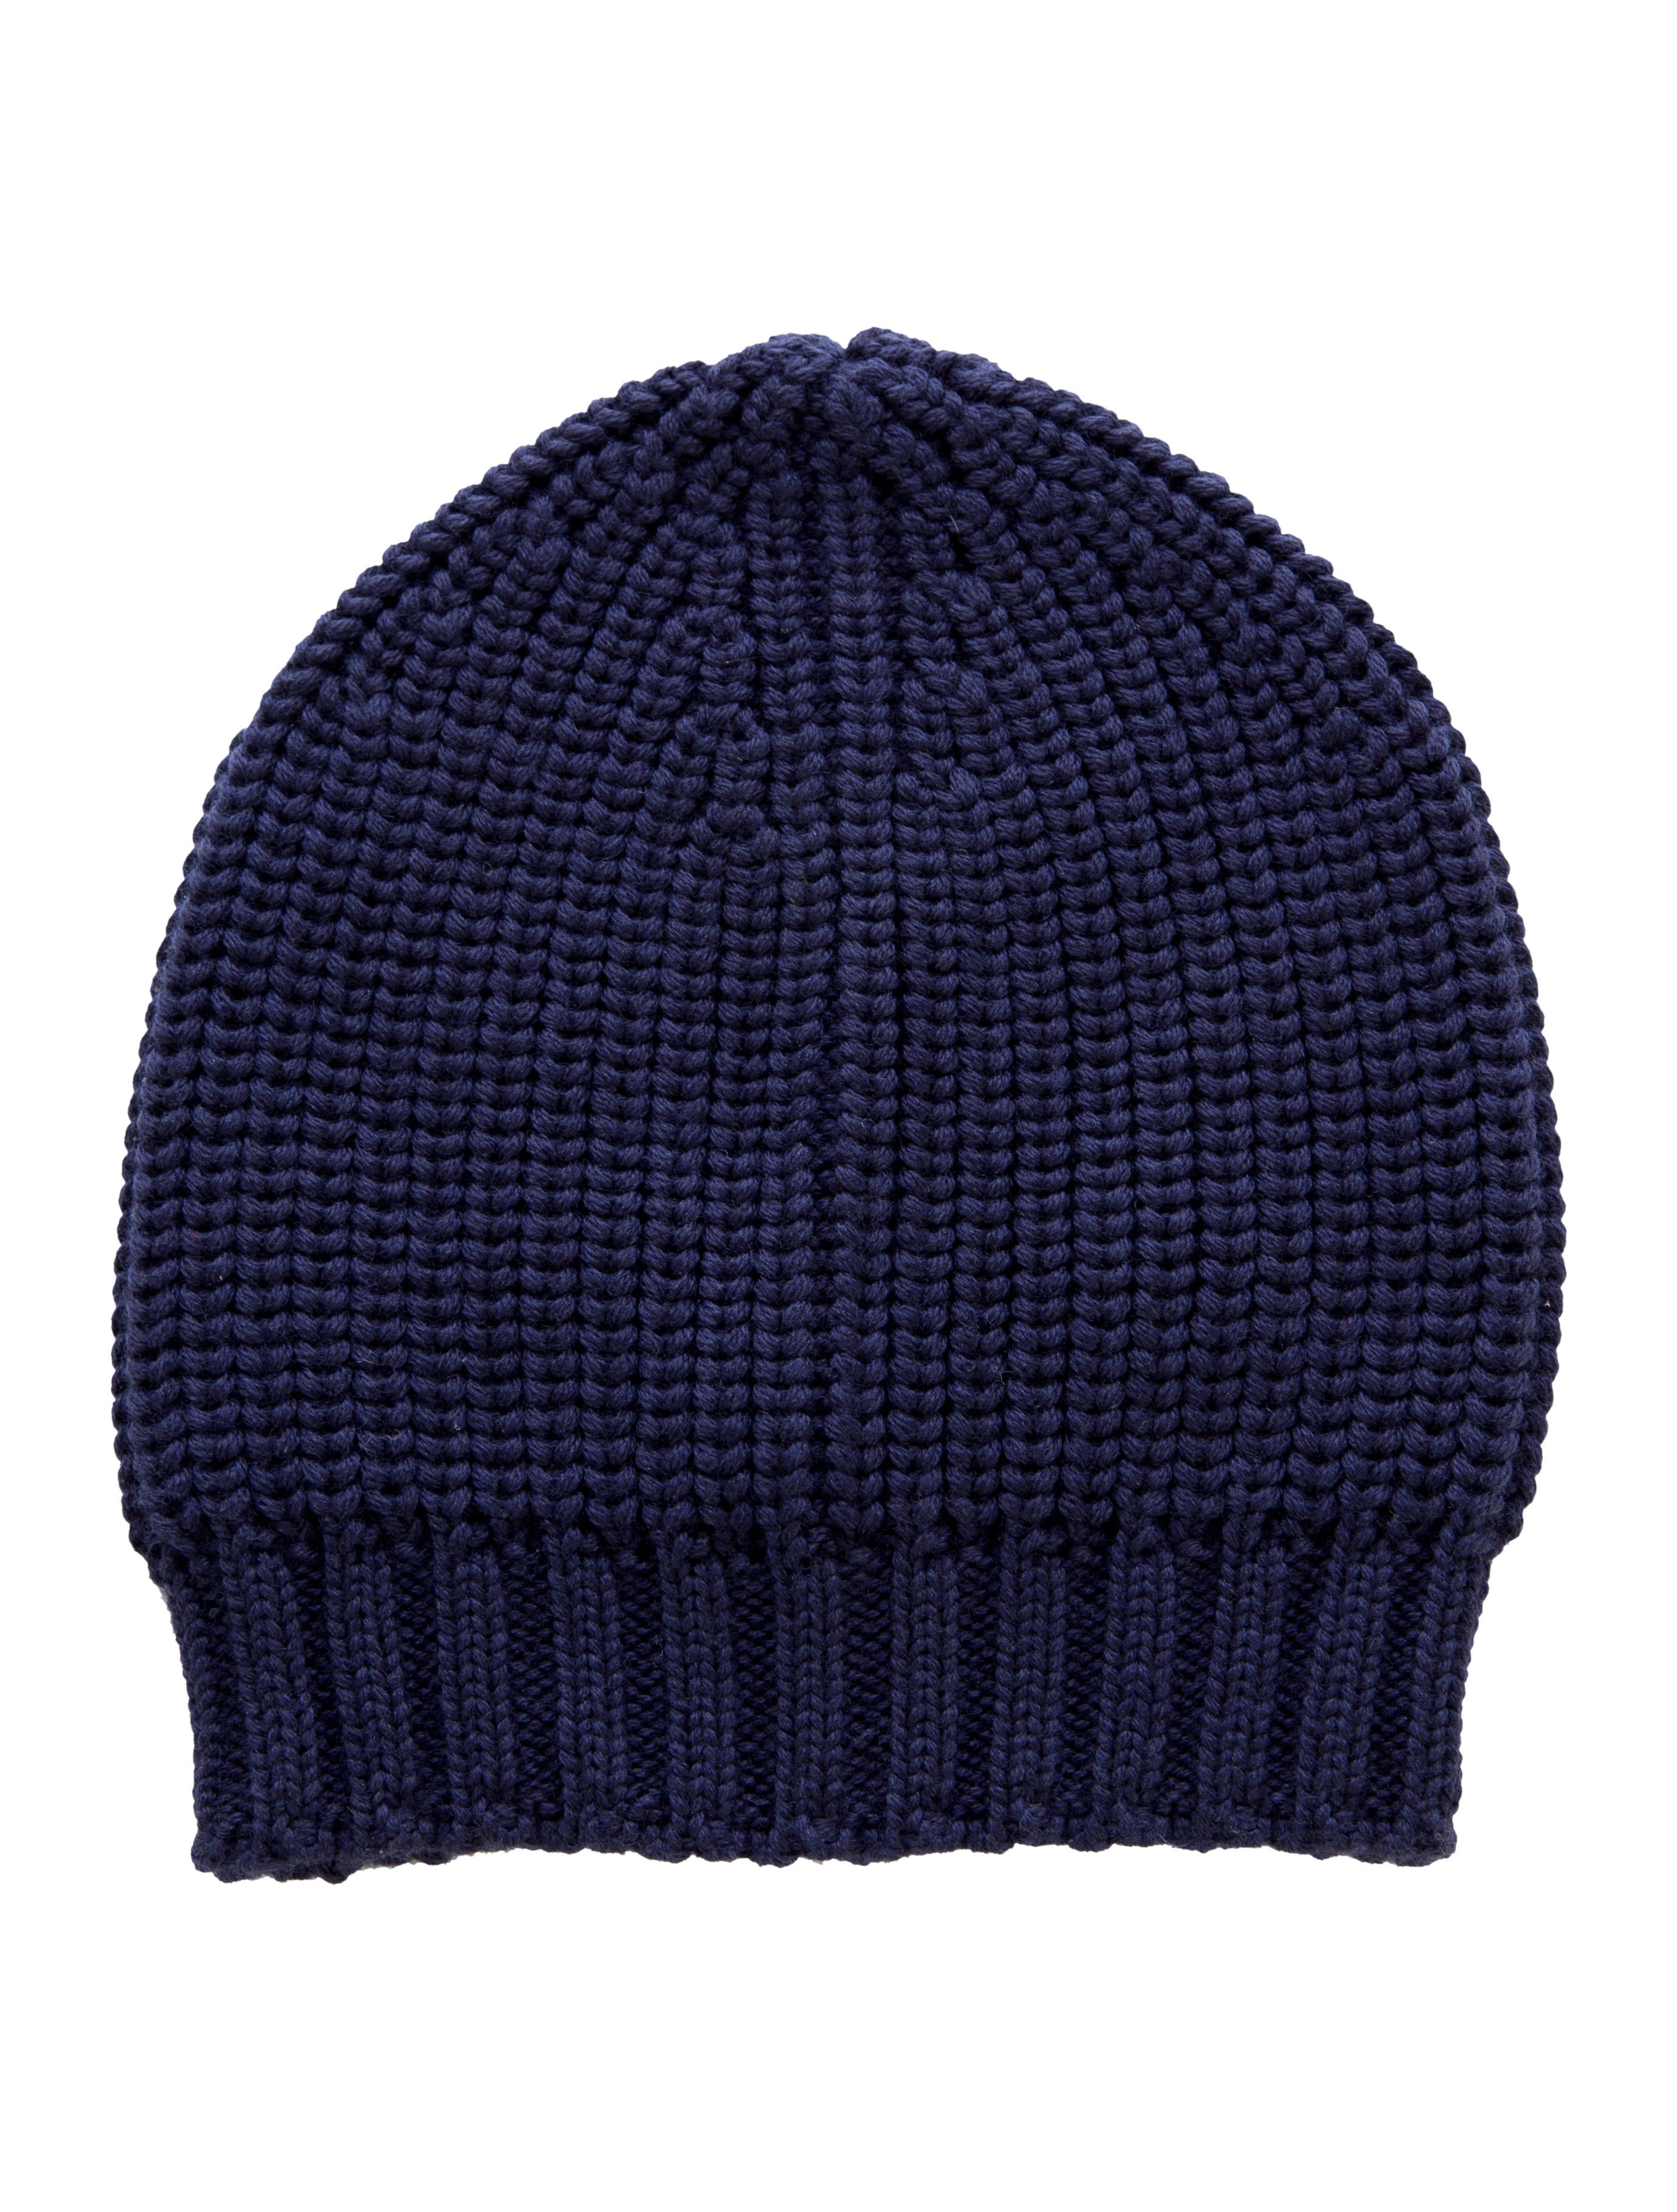 Joseph Wool Rib Knit Beanie - Accessories - JOS23970 The RealReal